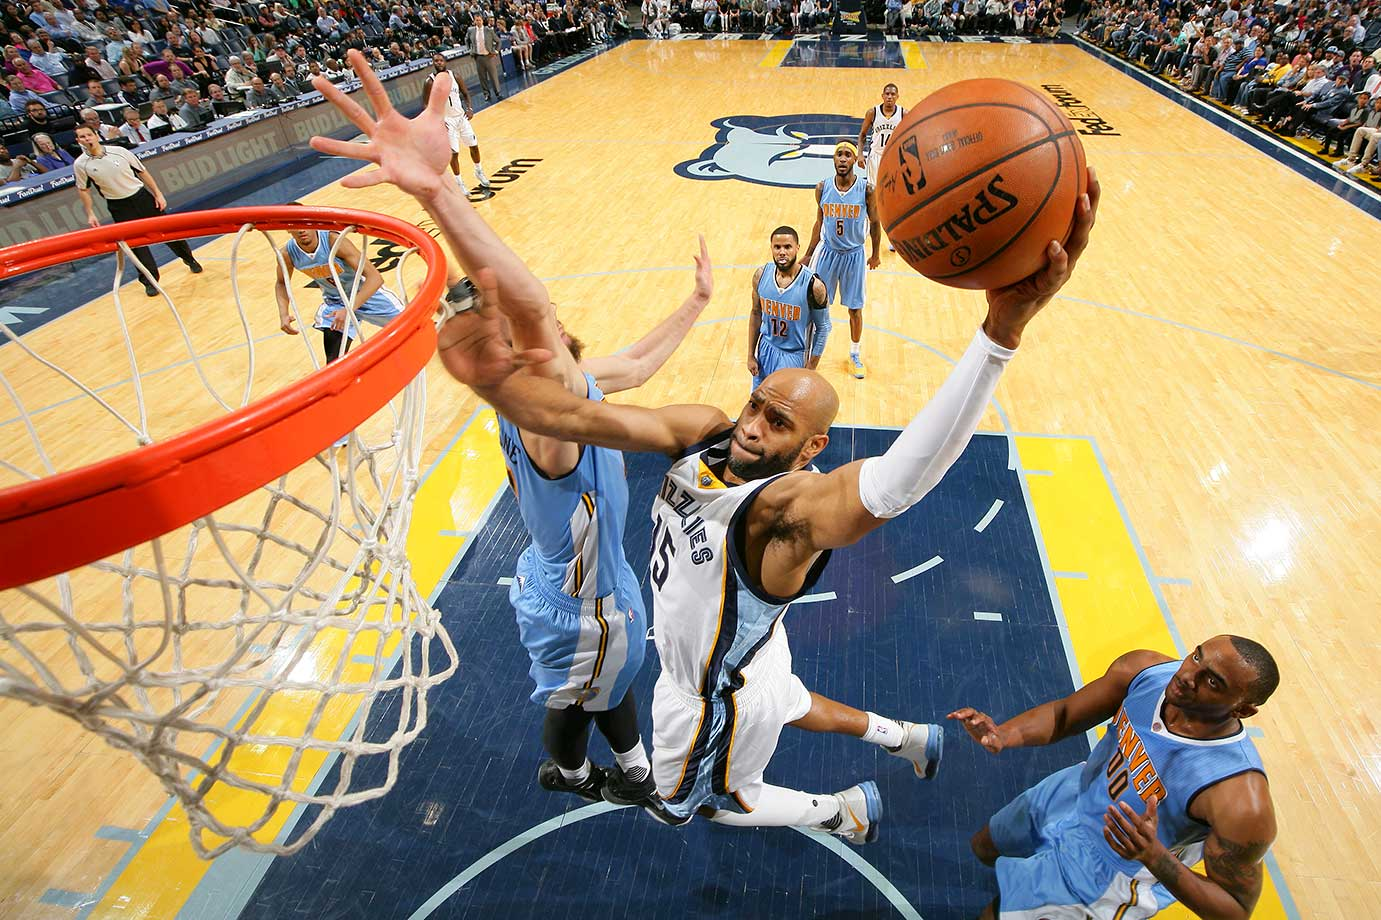 Vince Carter of the Memphis Grizzlies shoots the ball against the Denver Nuggets.